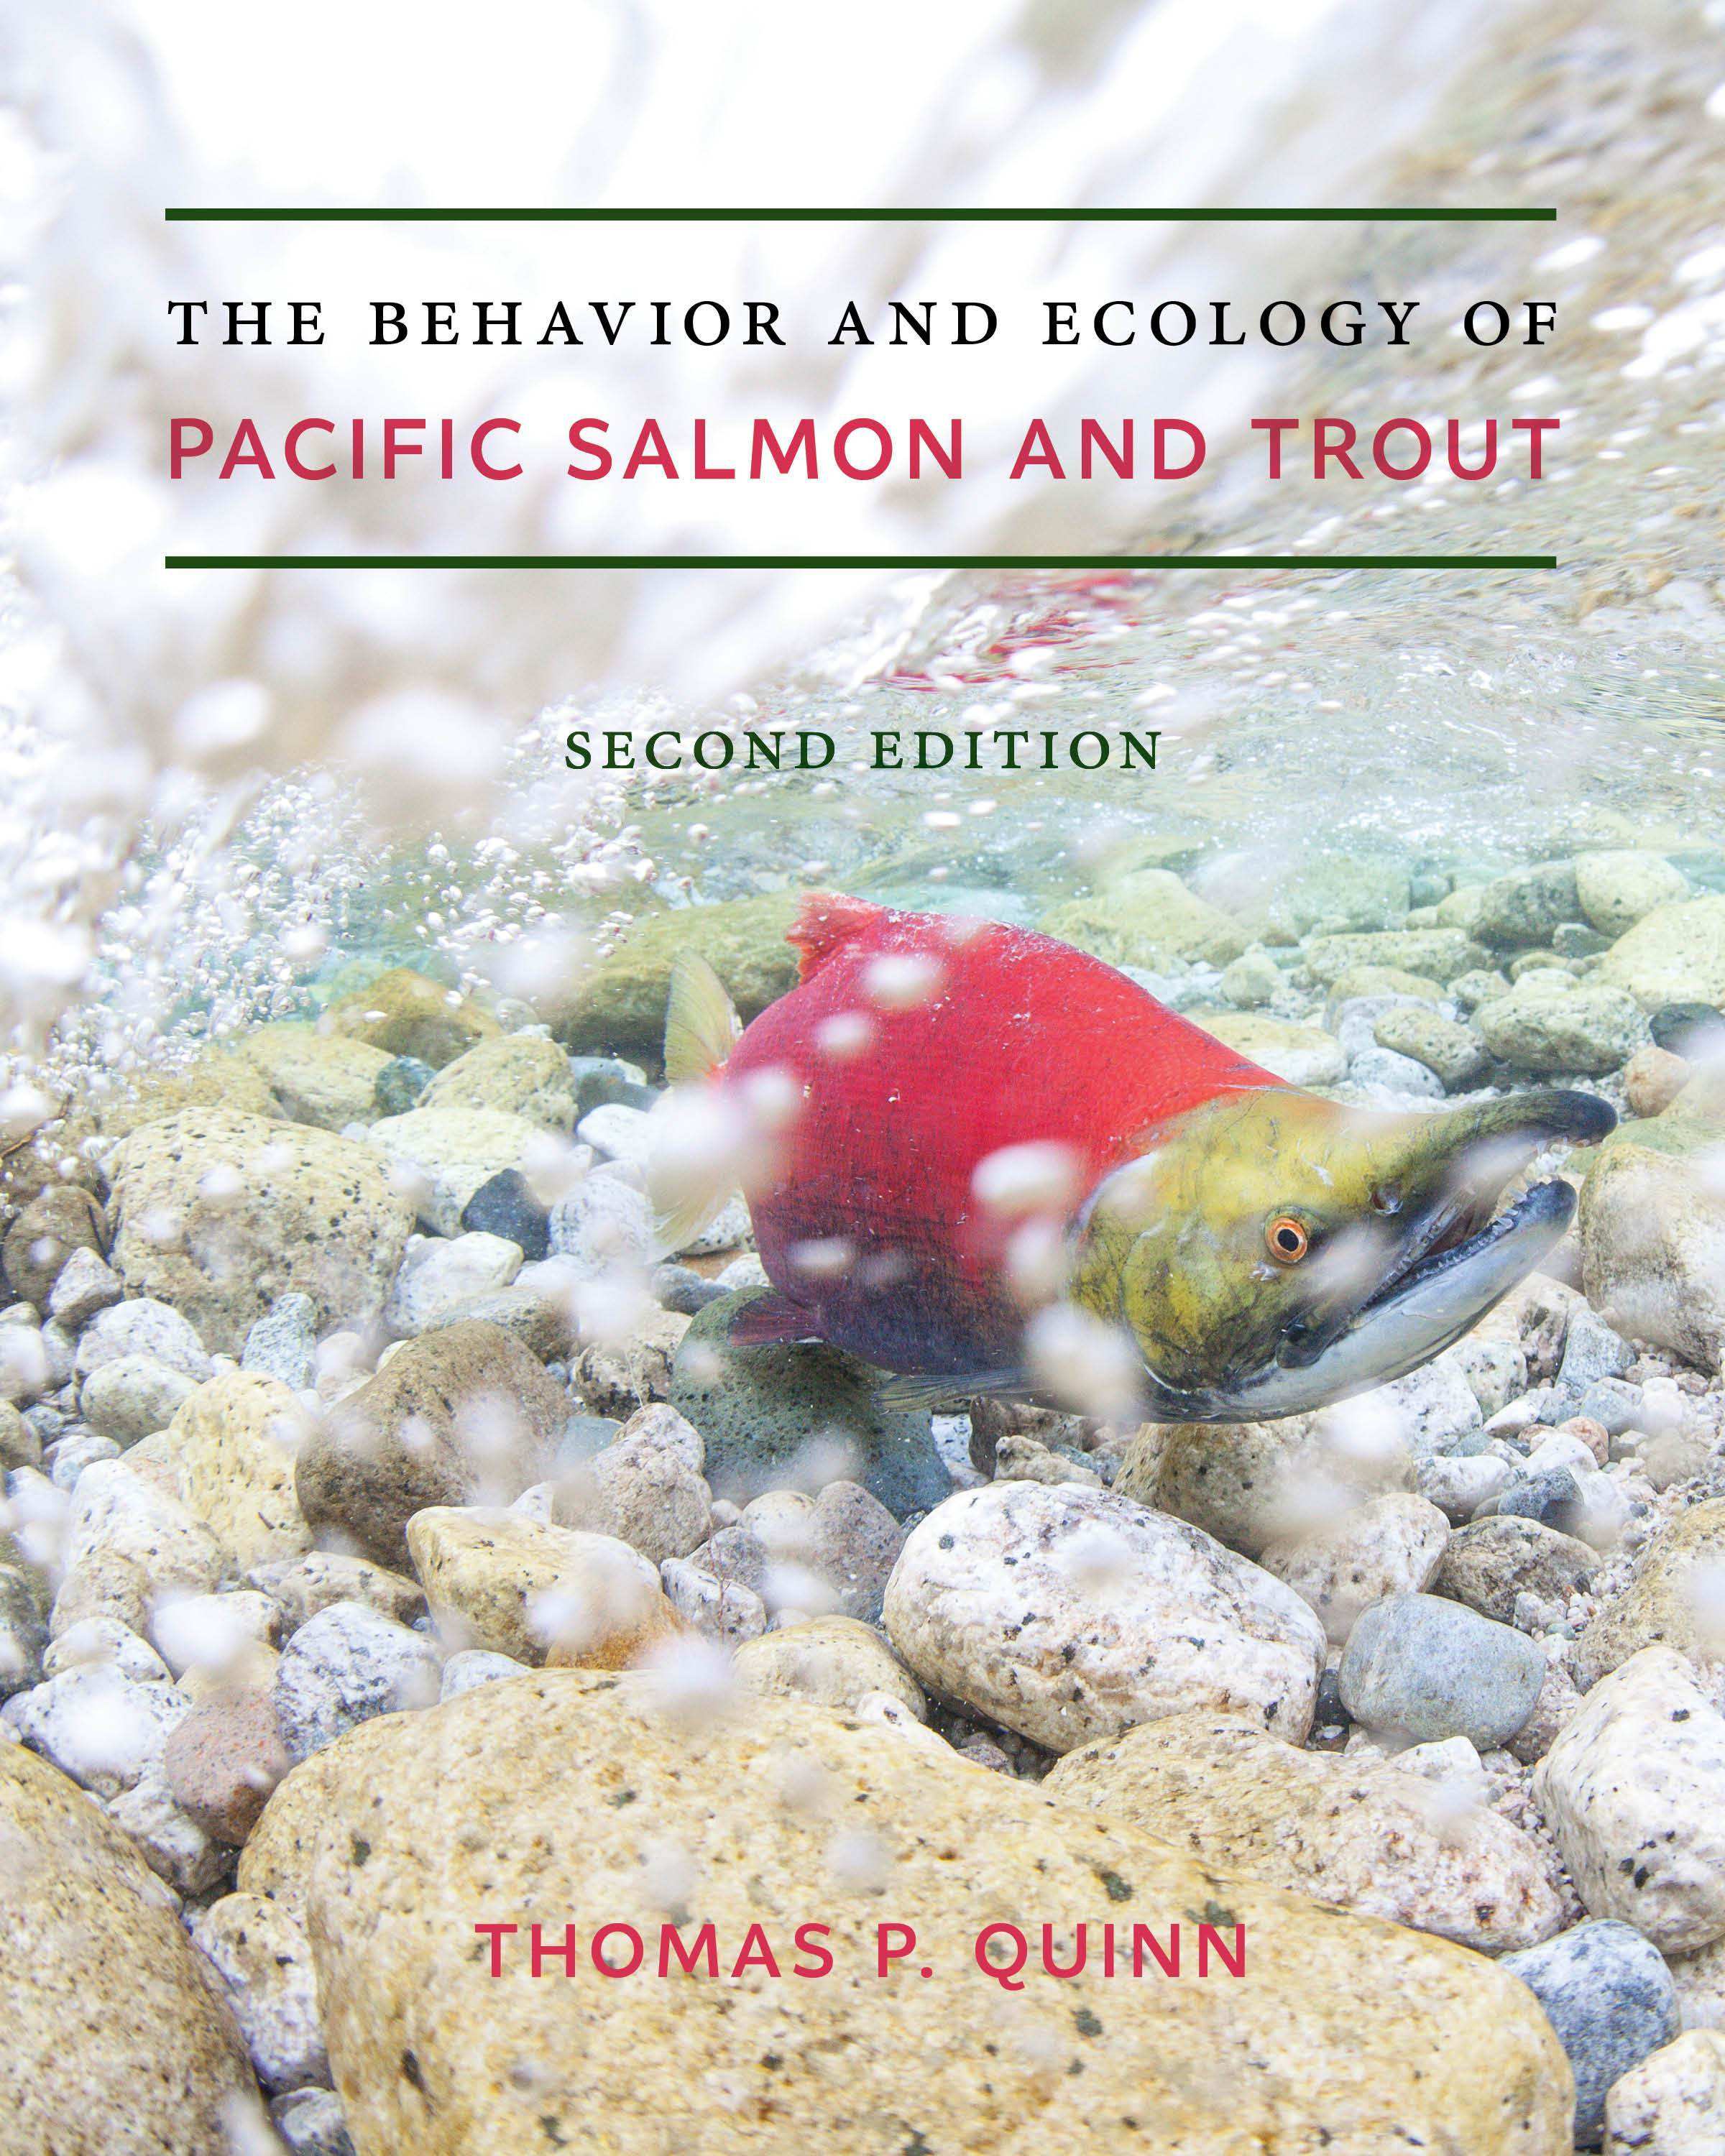 The Behavior and Ecology of Pacific Salmon and Trout by Thomas P Quinn -